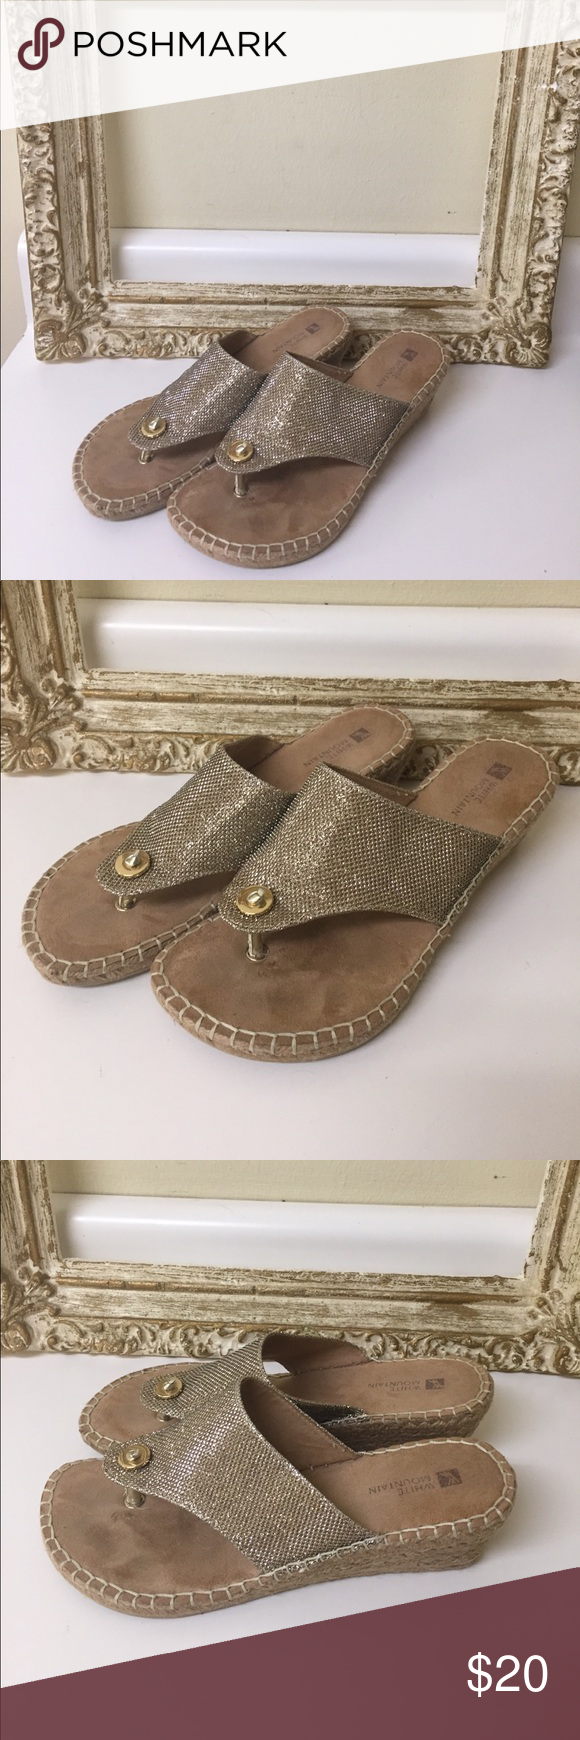 240cfe0edcfd0a White mountain glitter sandal. Size 7. 1 2 Great condition glitter white  mountain sandal. Size 7 1 2 White Mountain Shoes Sandals